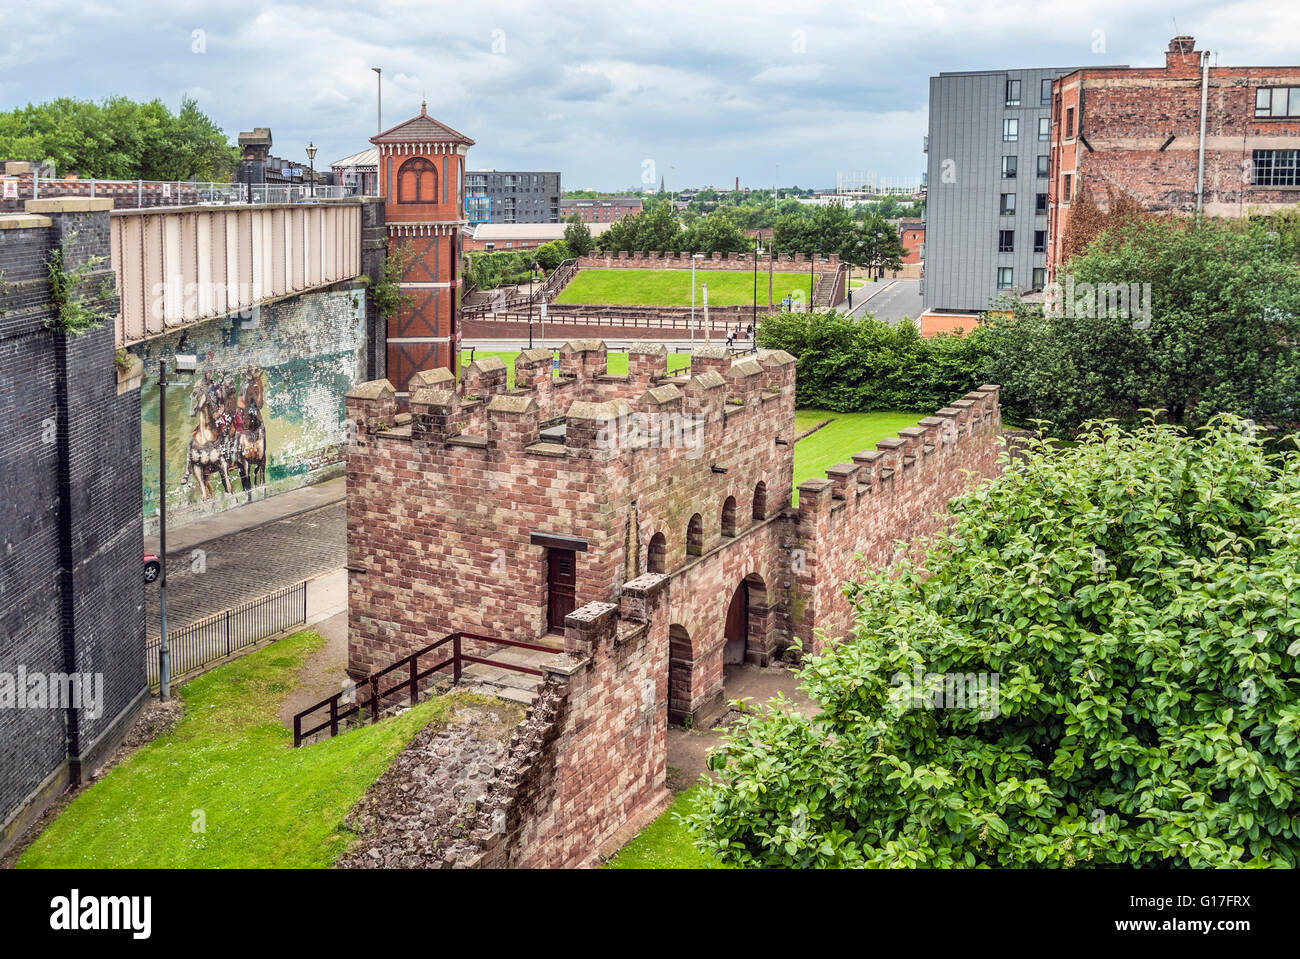 The remains of the Roman fort (Mamucium), protected as Scheduled Ancient Monument in the Castlefield area of Manchester, - Stock Image